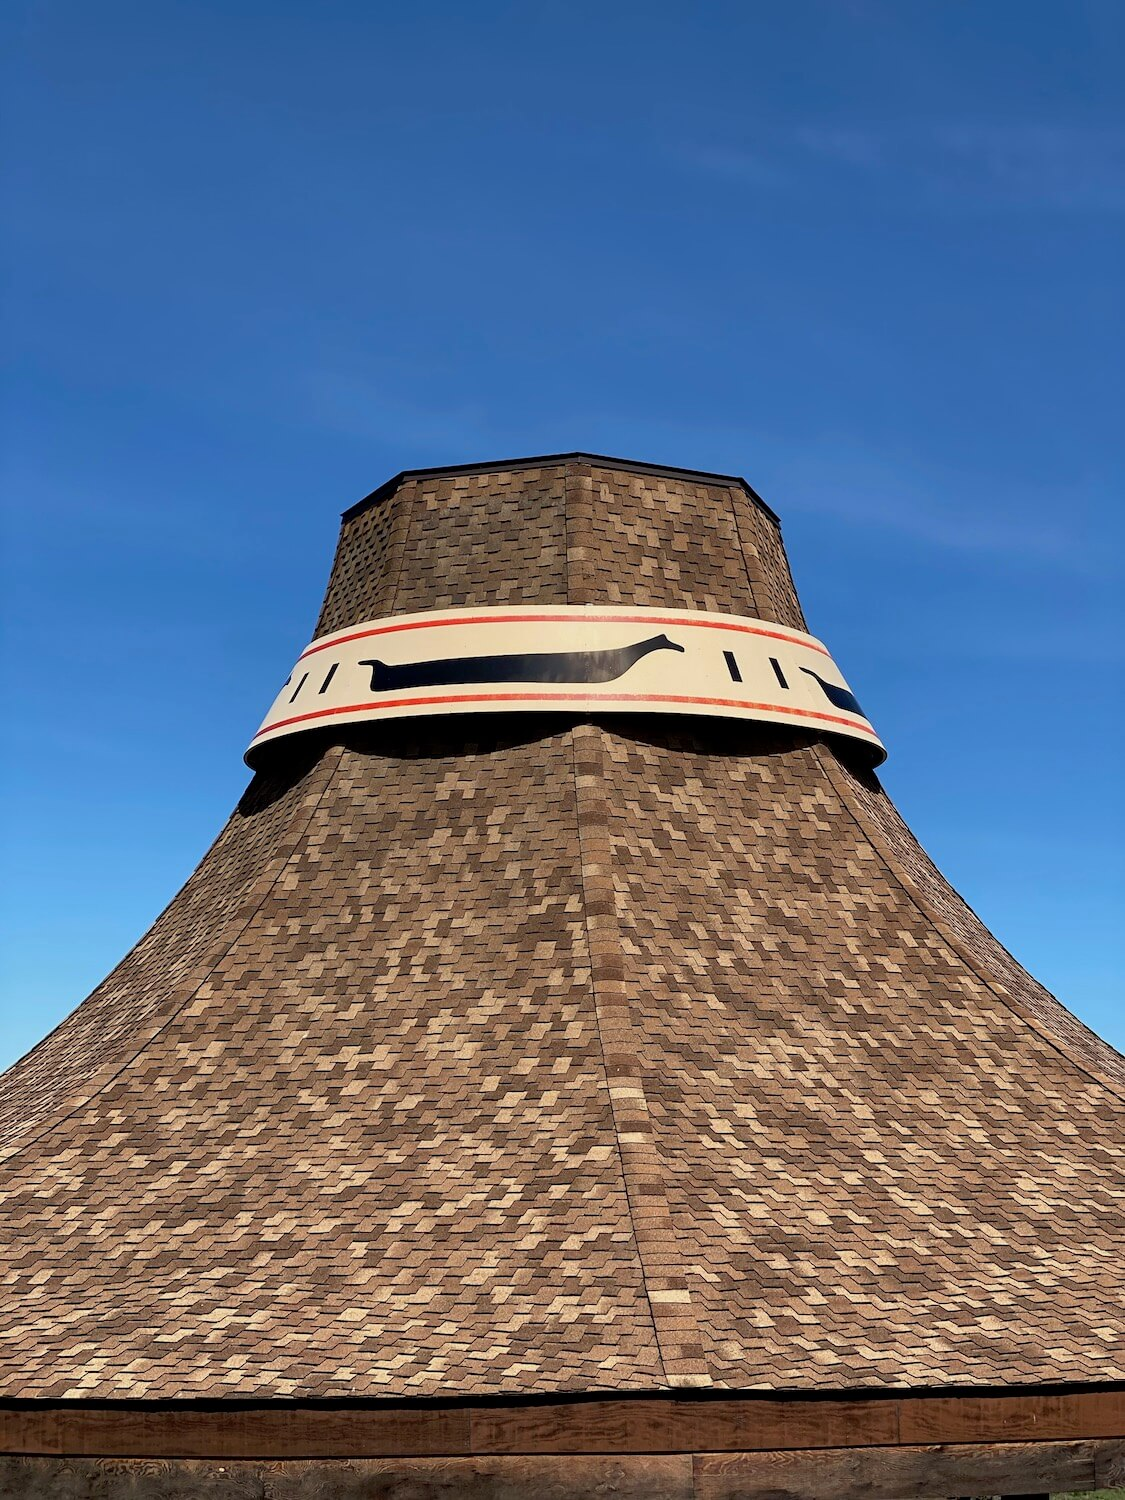 A large replica of a cedar hat traditionally worn by the Swinomish people is one of three large pavilion covers erected in a park across the channel from the pioneer town of La Conner, Washington.  This is a great stop along a day trip from Seattle.